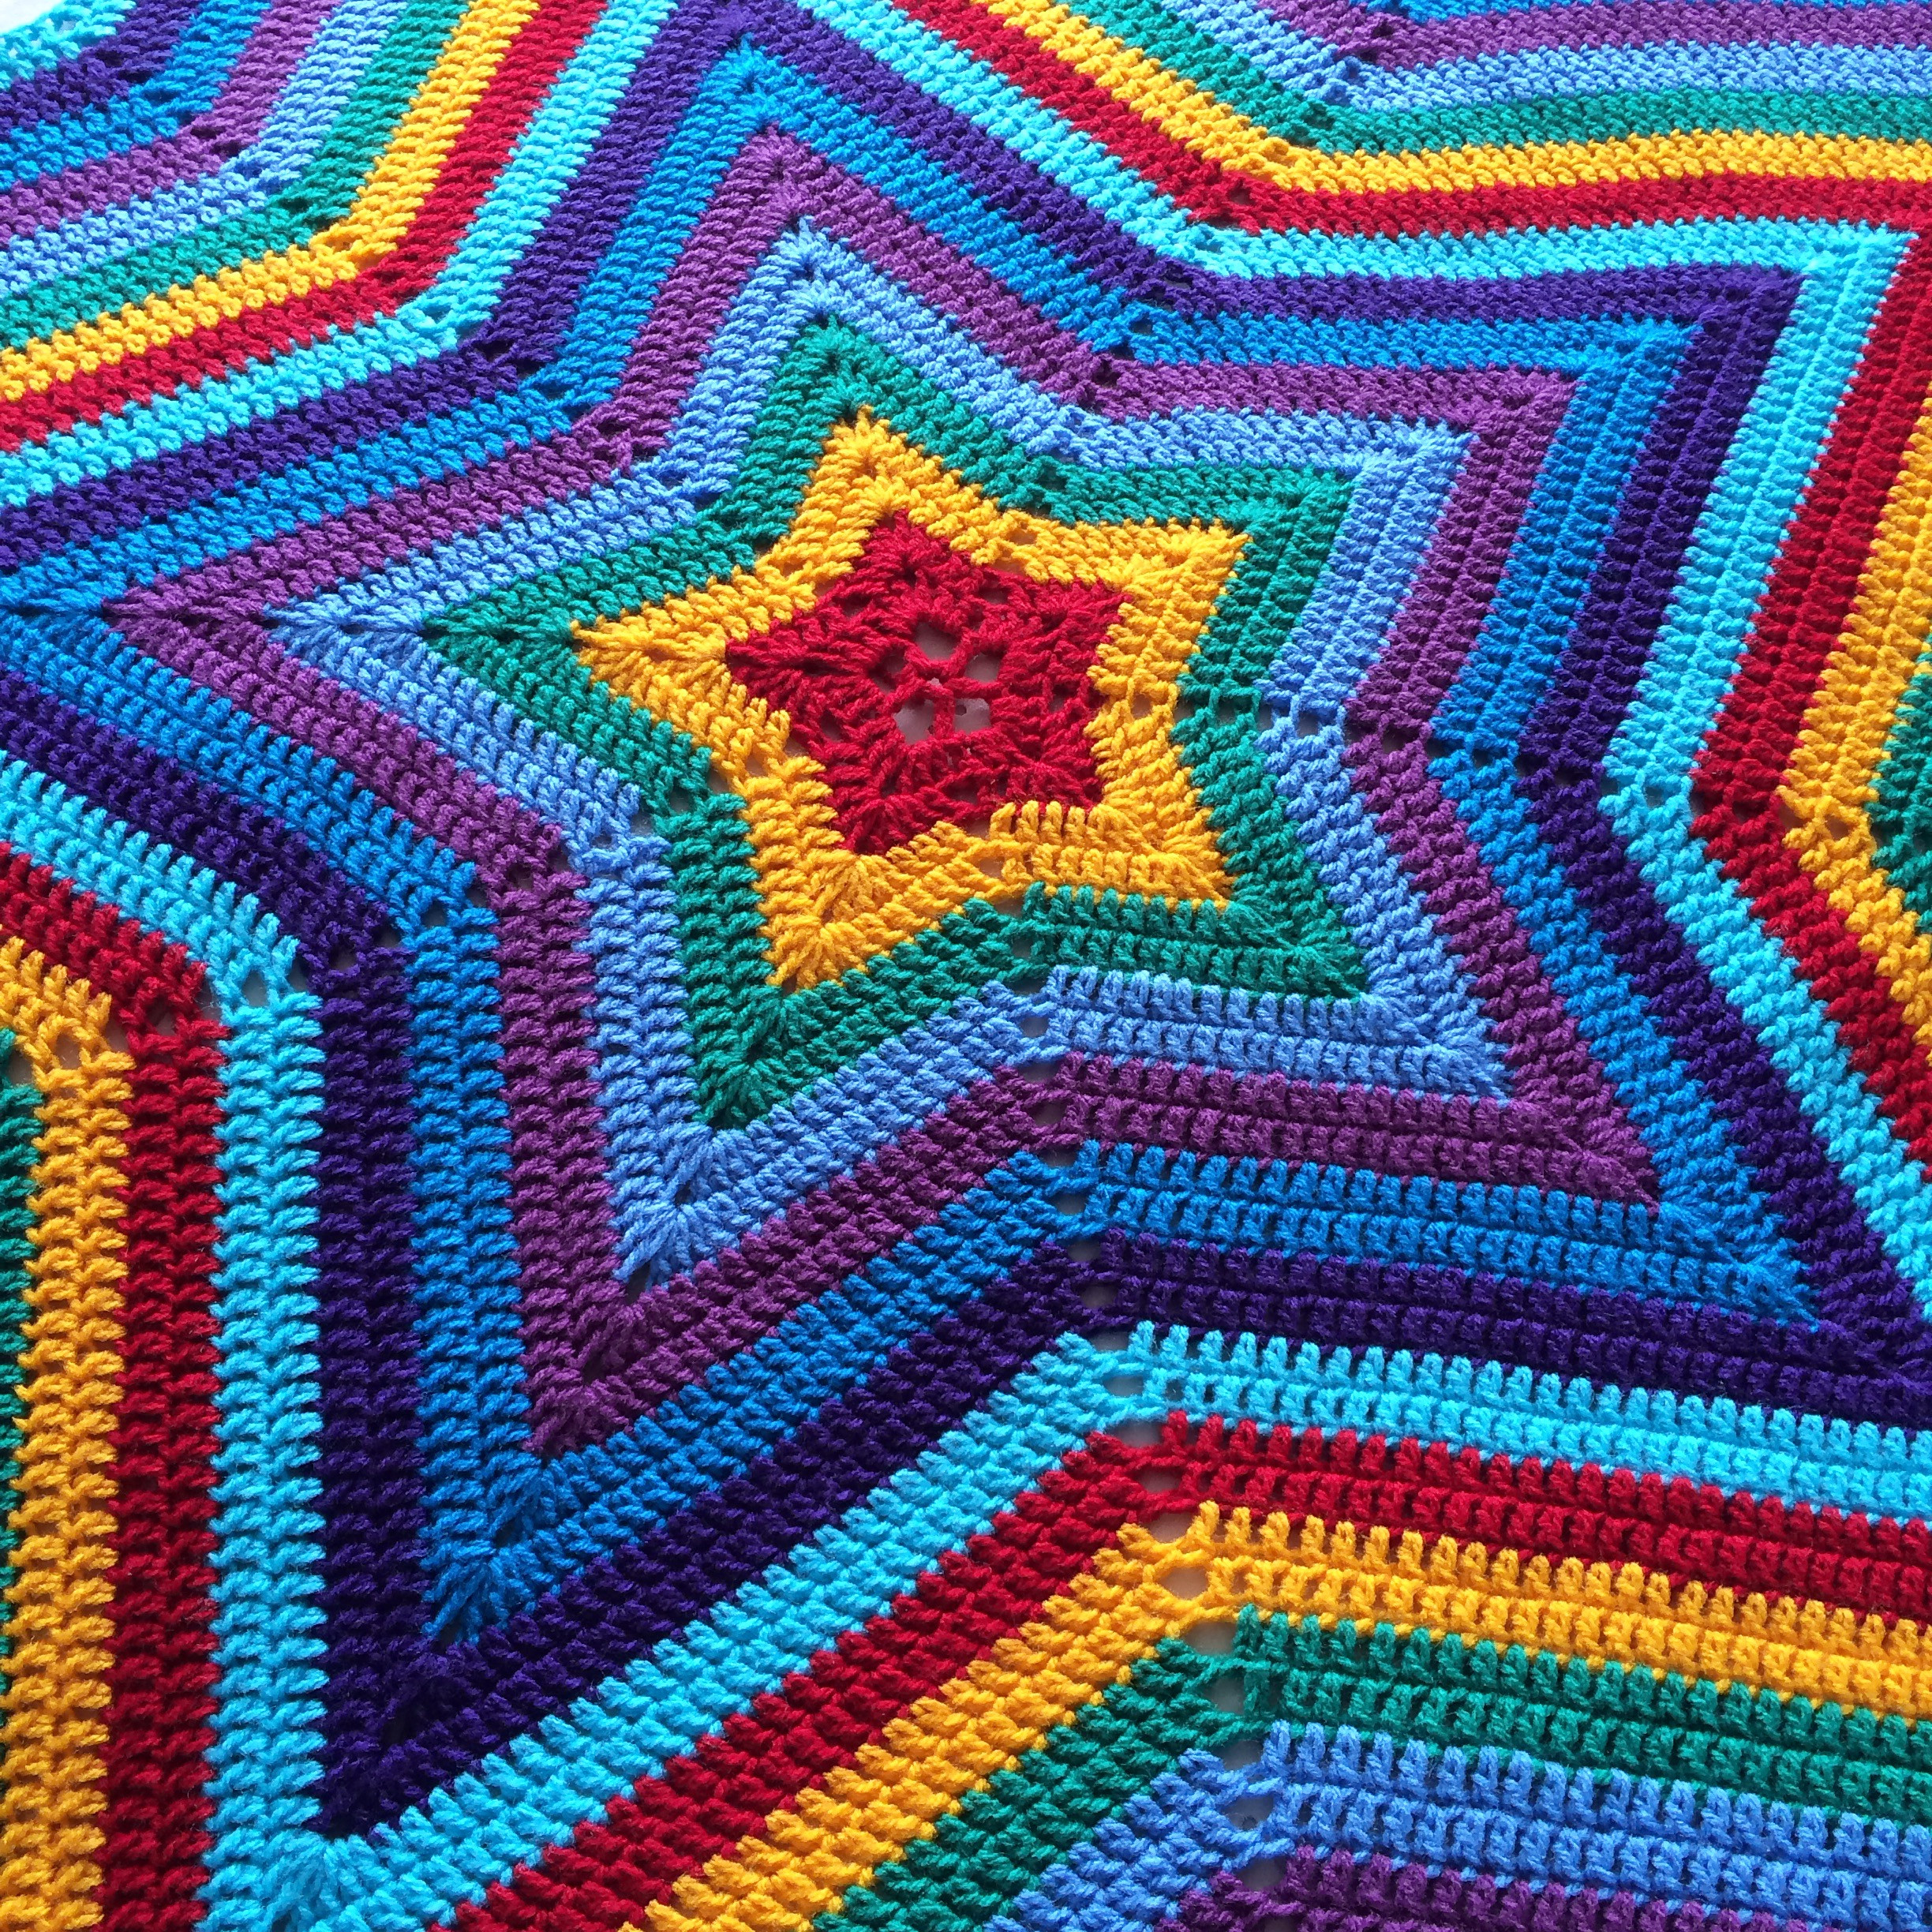 Inspirational Crochet Blankets – Patternpiper Crochet Star Blanket Of Superb 49 Images Crochet Star Blanket